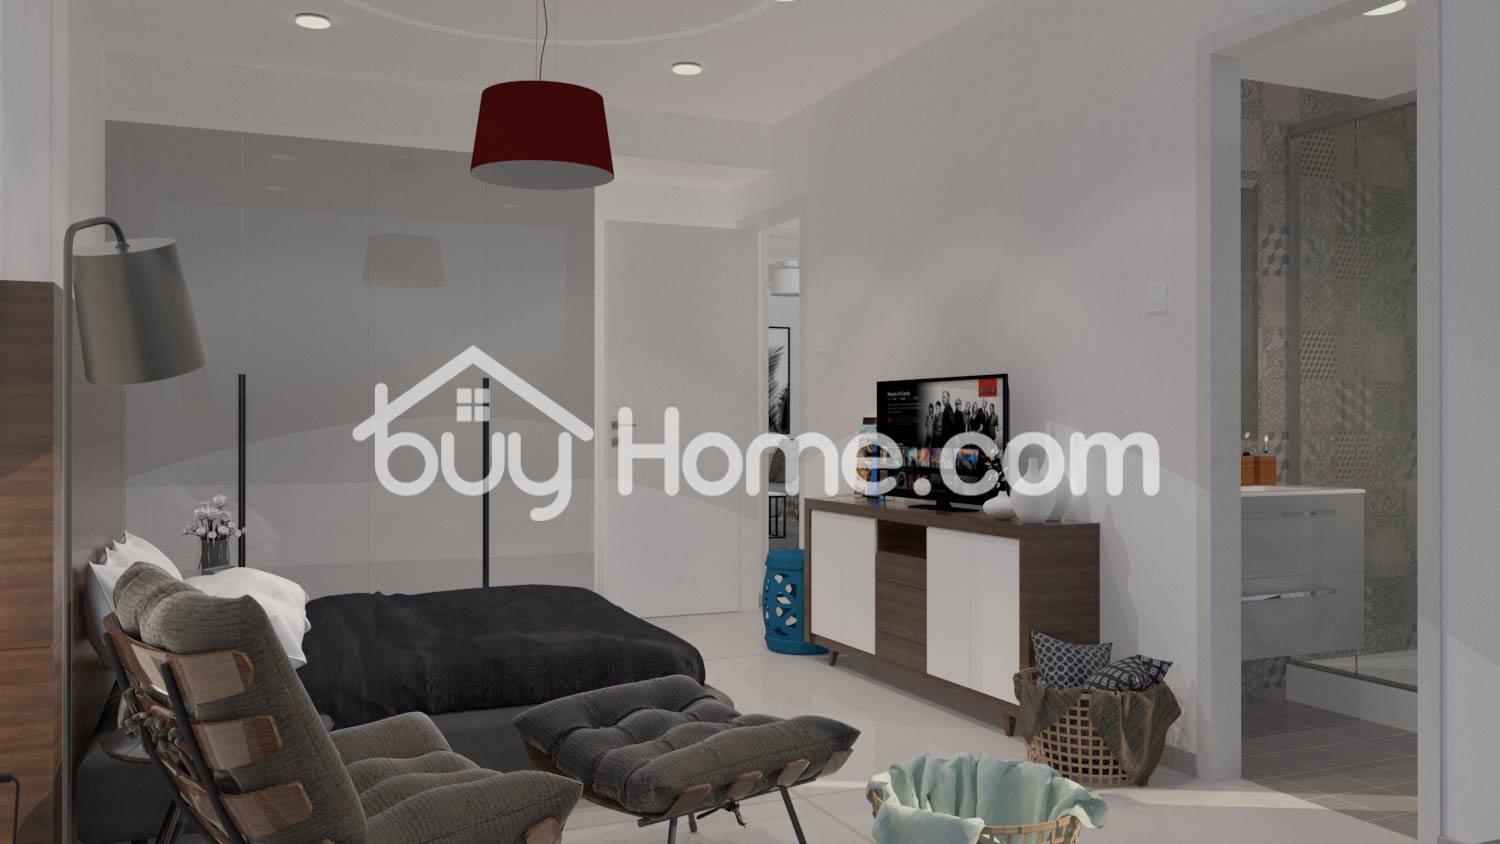 Modern 1 BDR Apartment | BuyHome